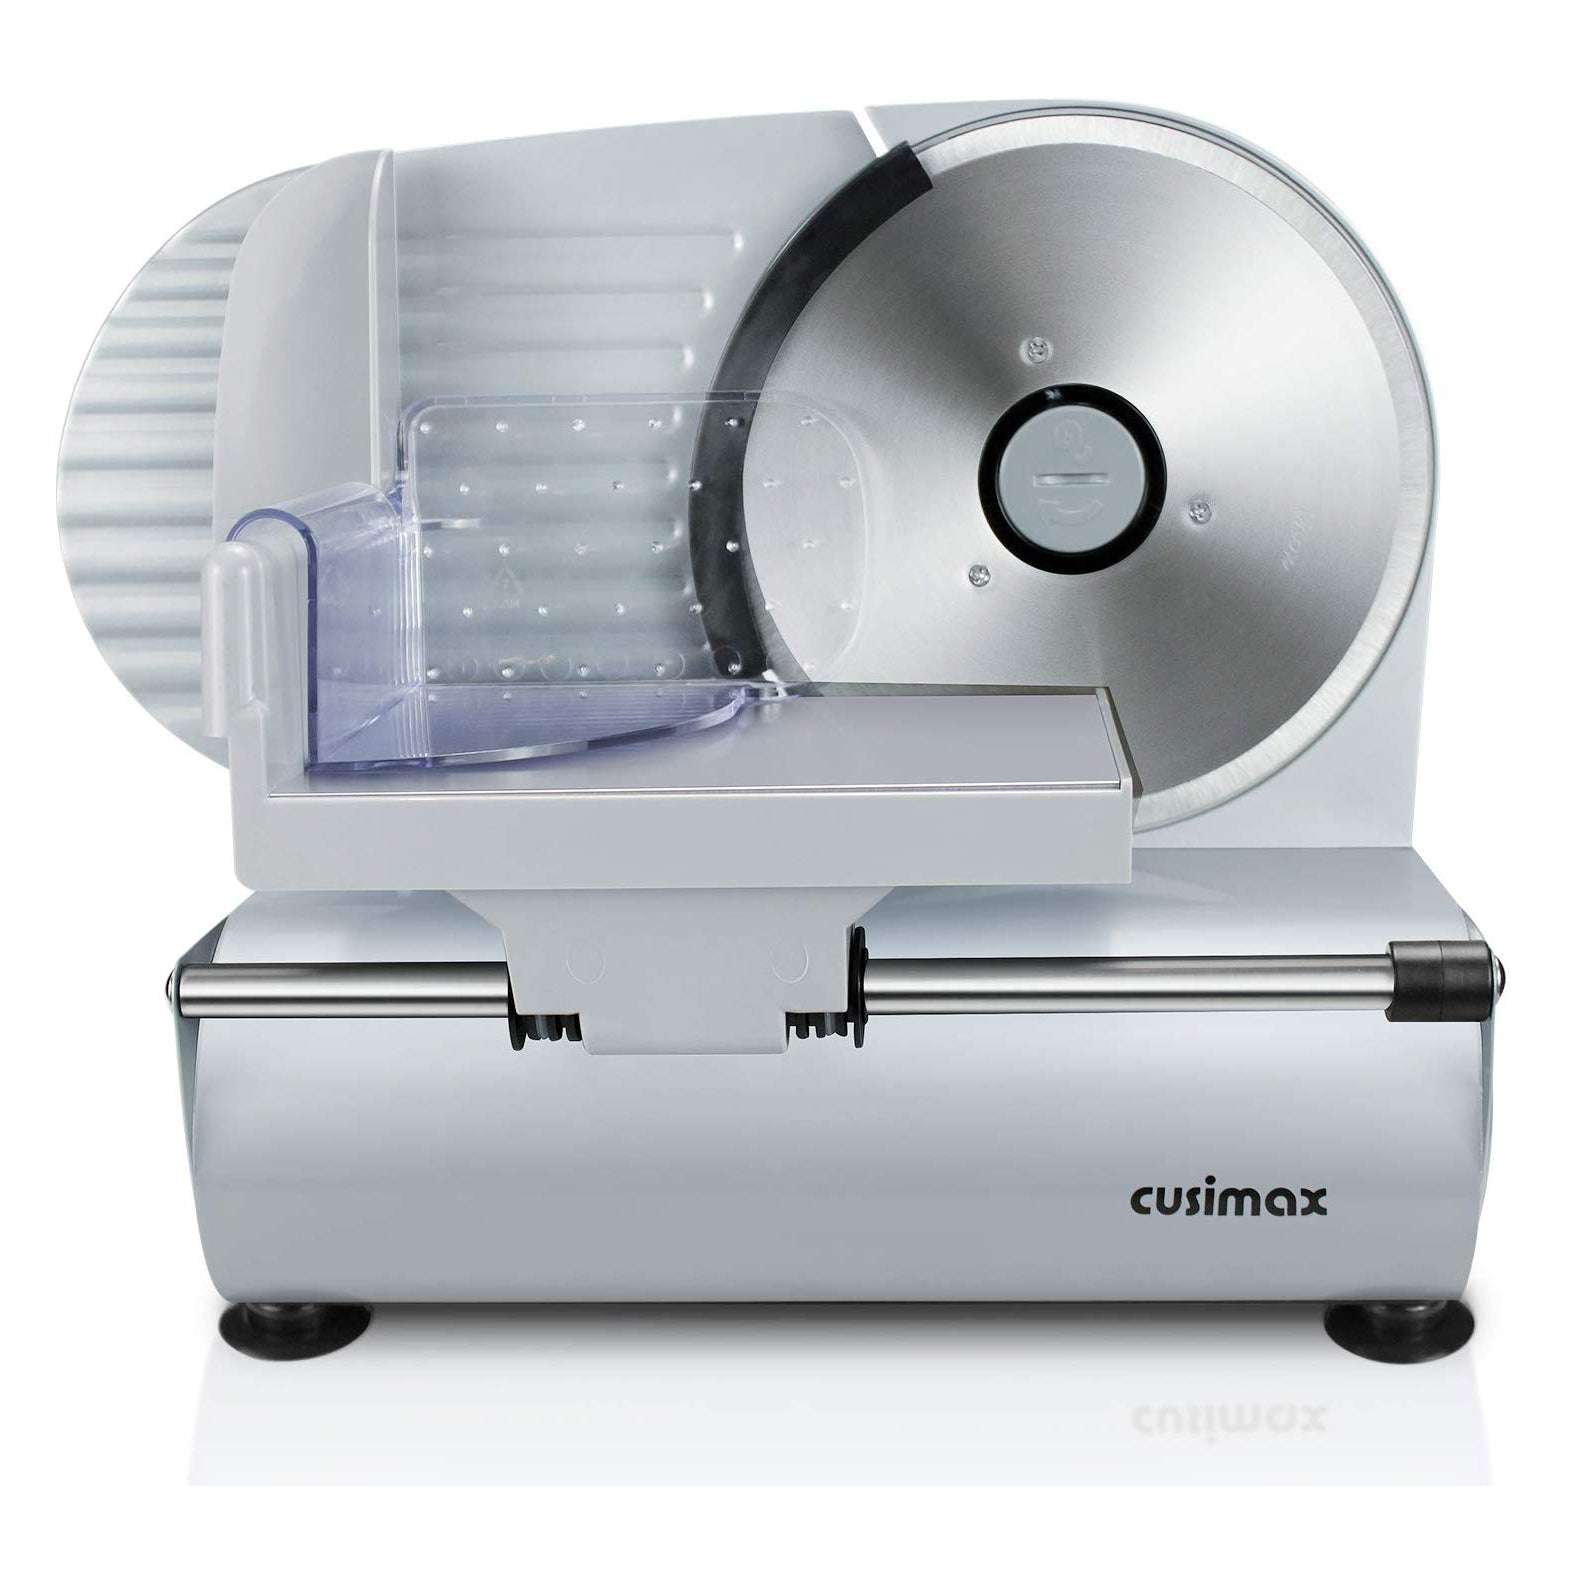 Cusimax 200W Electric Food Slicer with 7.5 Inch Blade Precision